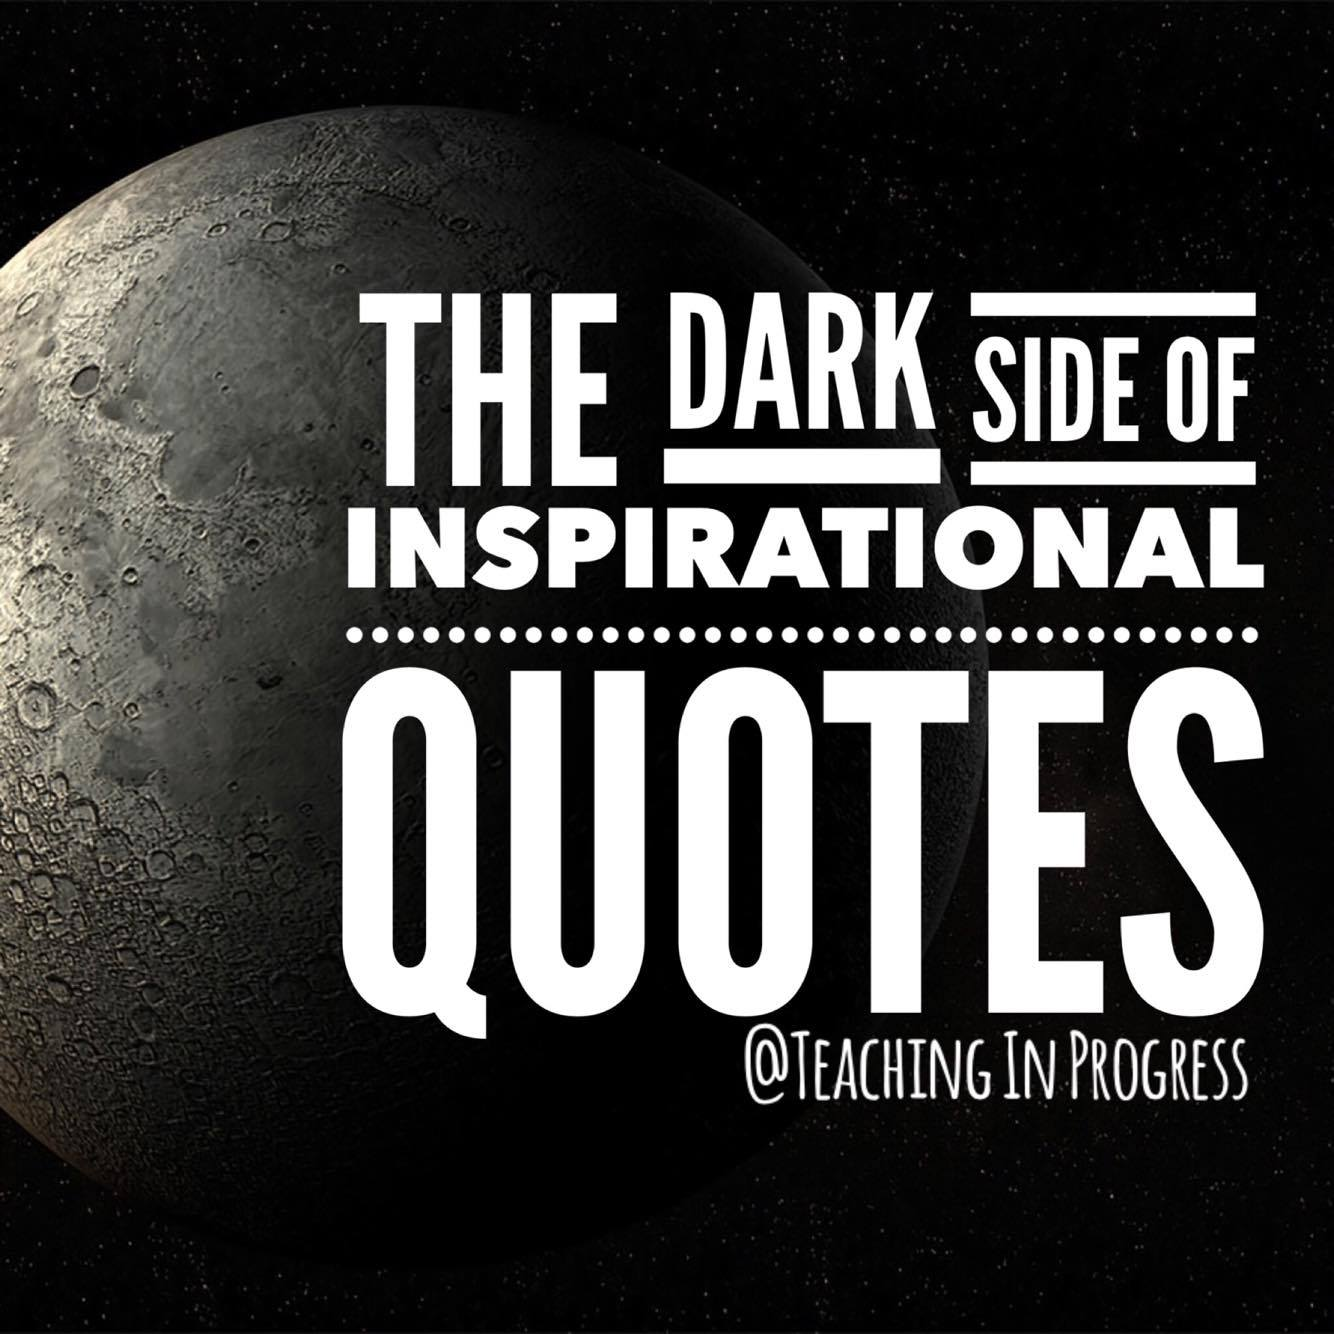 Inspirational Uplifting Quotes Unique The Dark Side Of Inspirational Quotes  Teaching In Progress